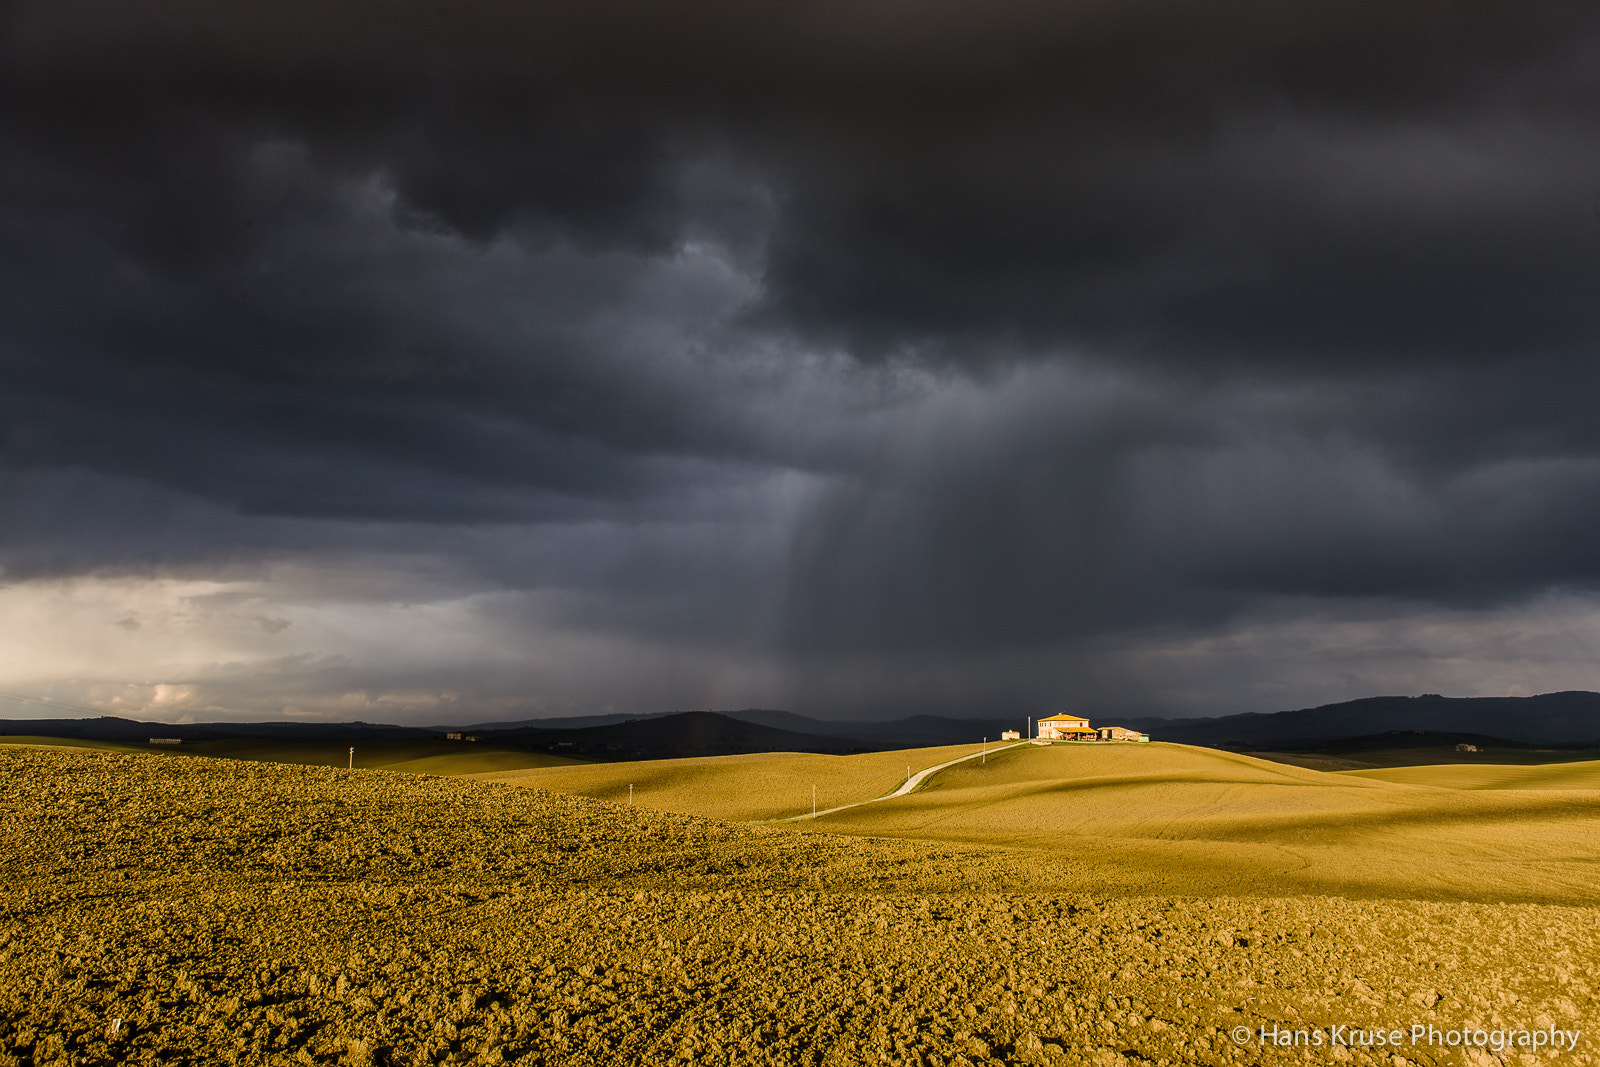 Photograph Tuscany with drama by Hans Kruse on 500px